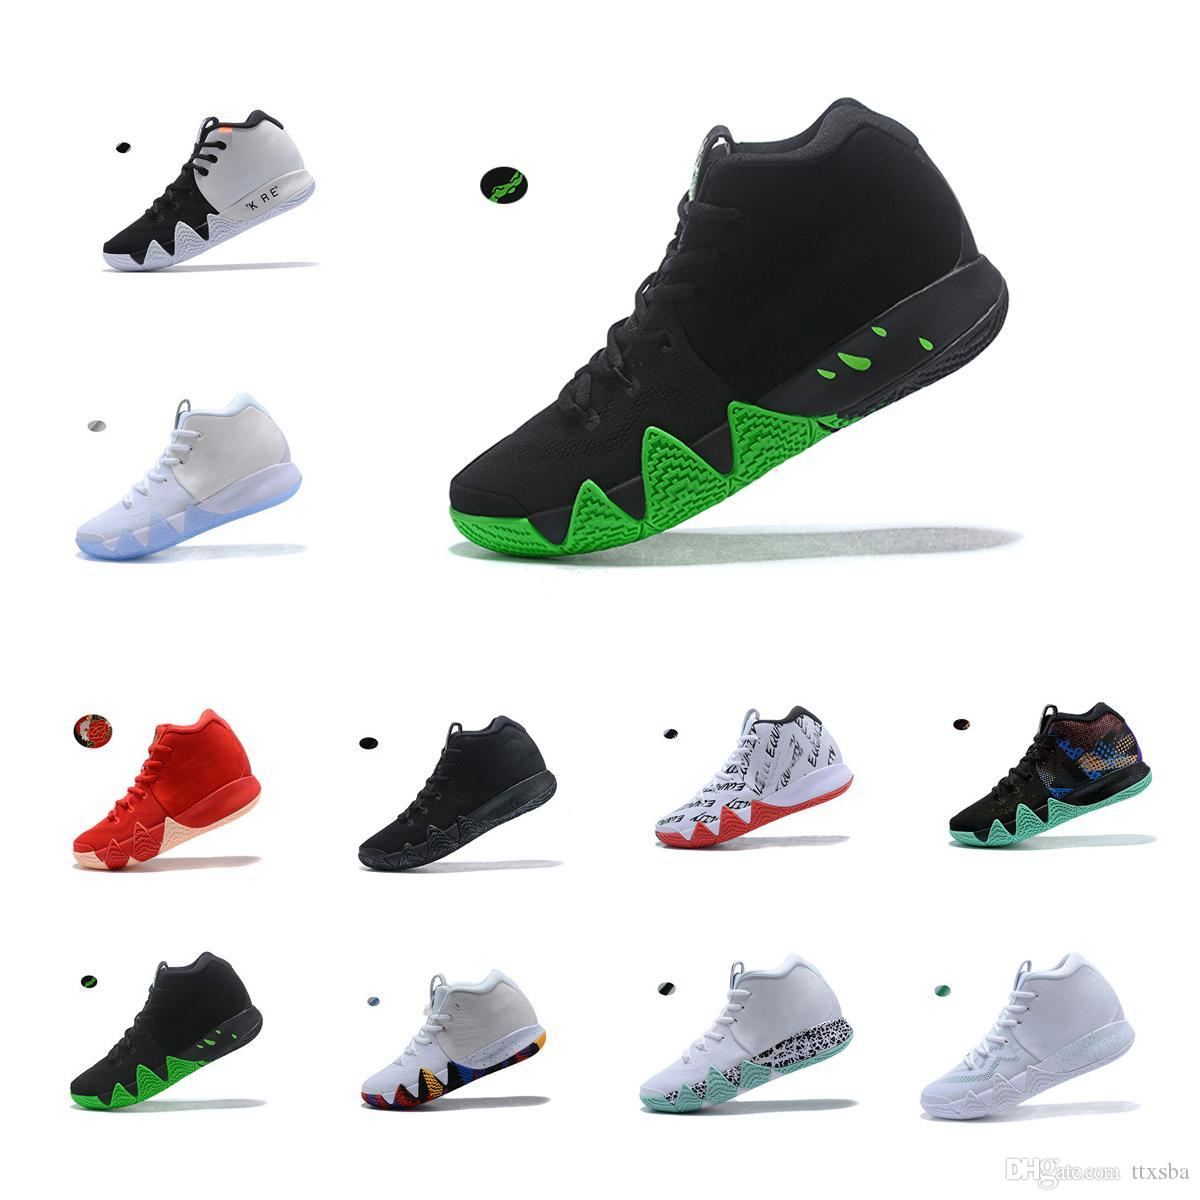 73a10b87c 2018 New Top S1 Men Basketball Shoes Athletics Sneakers Irving ...